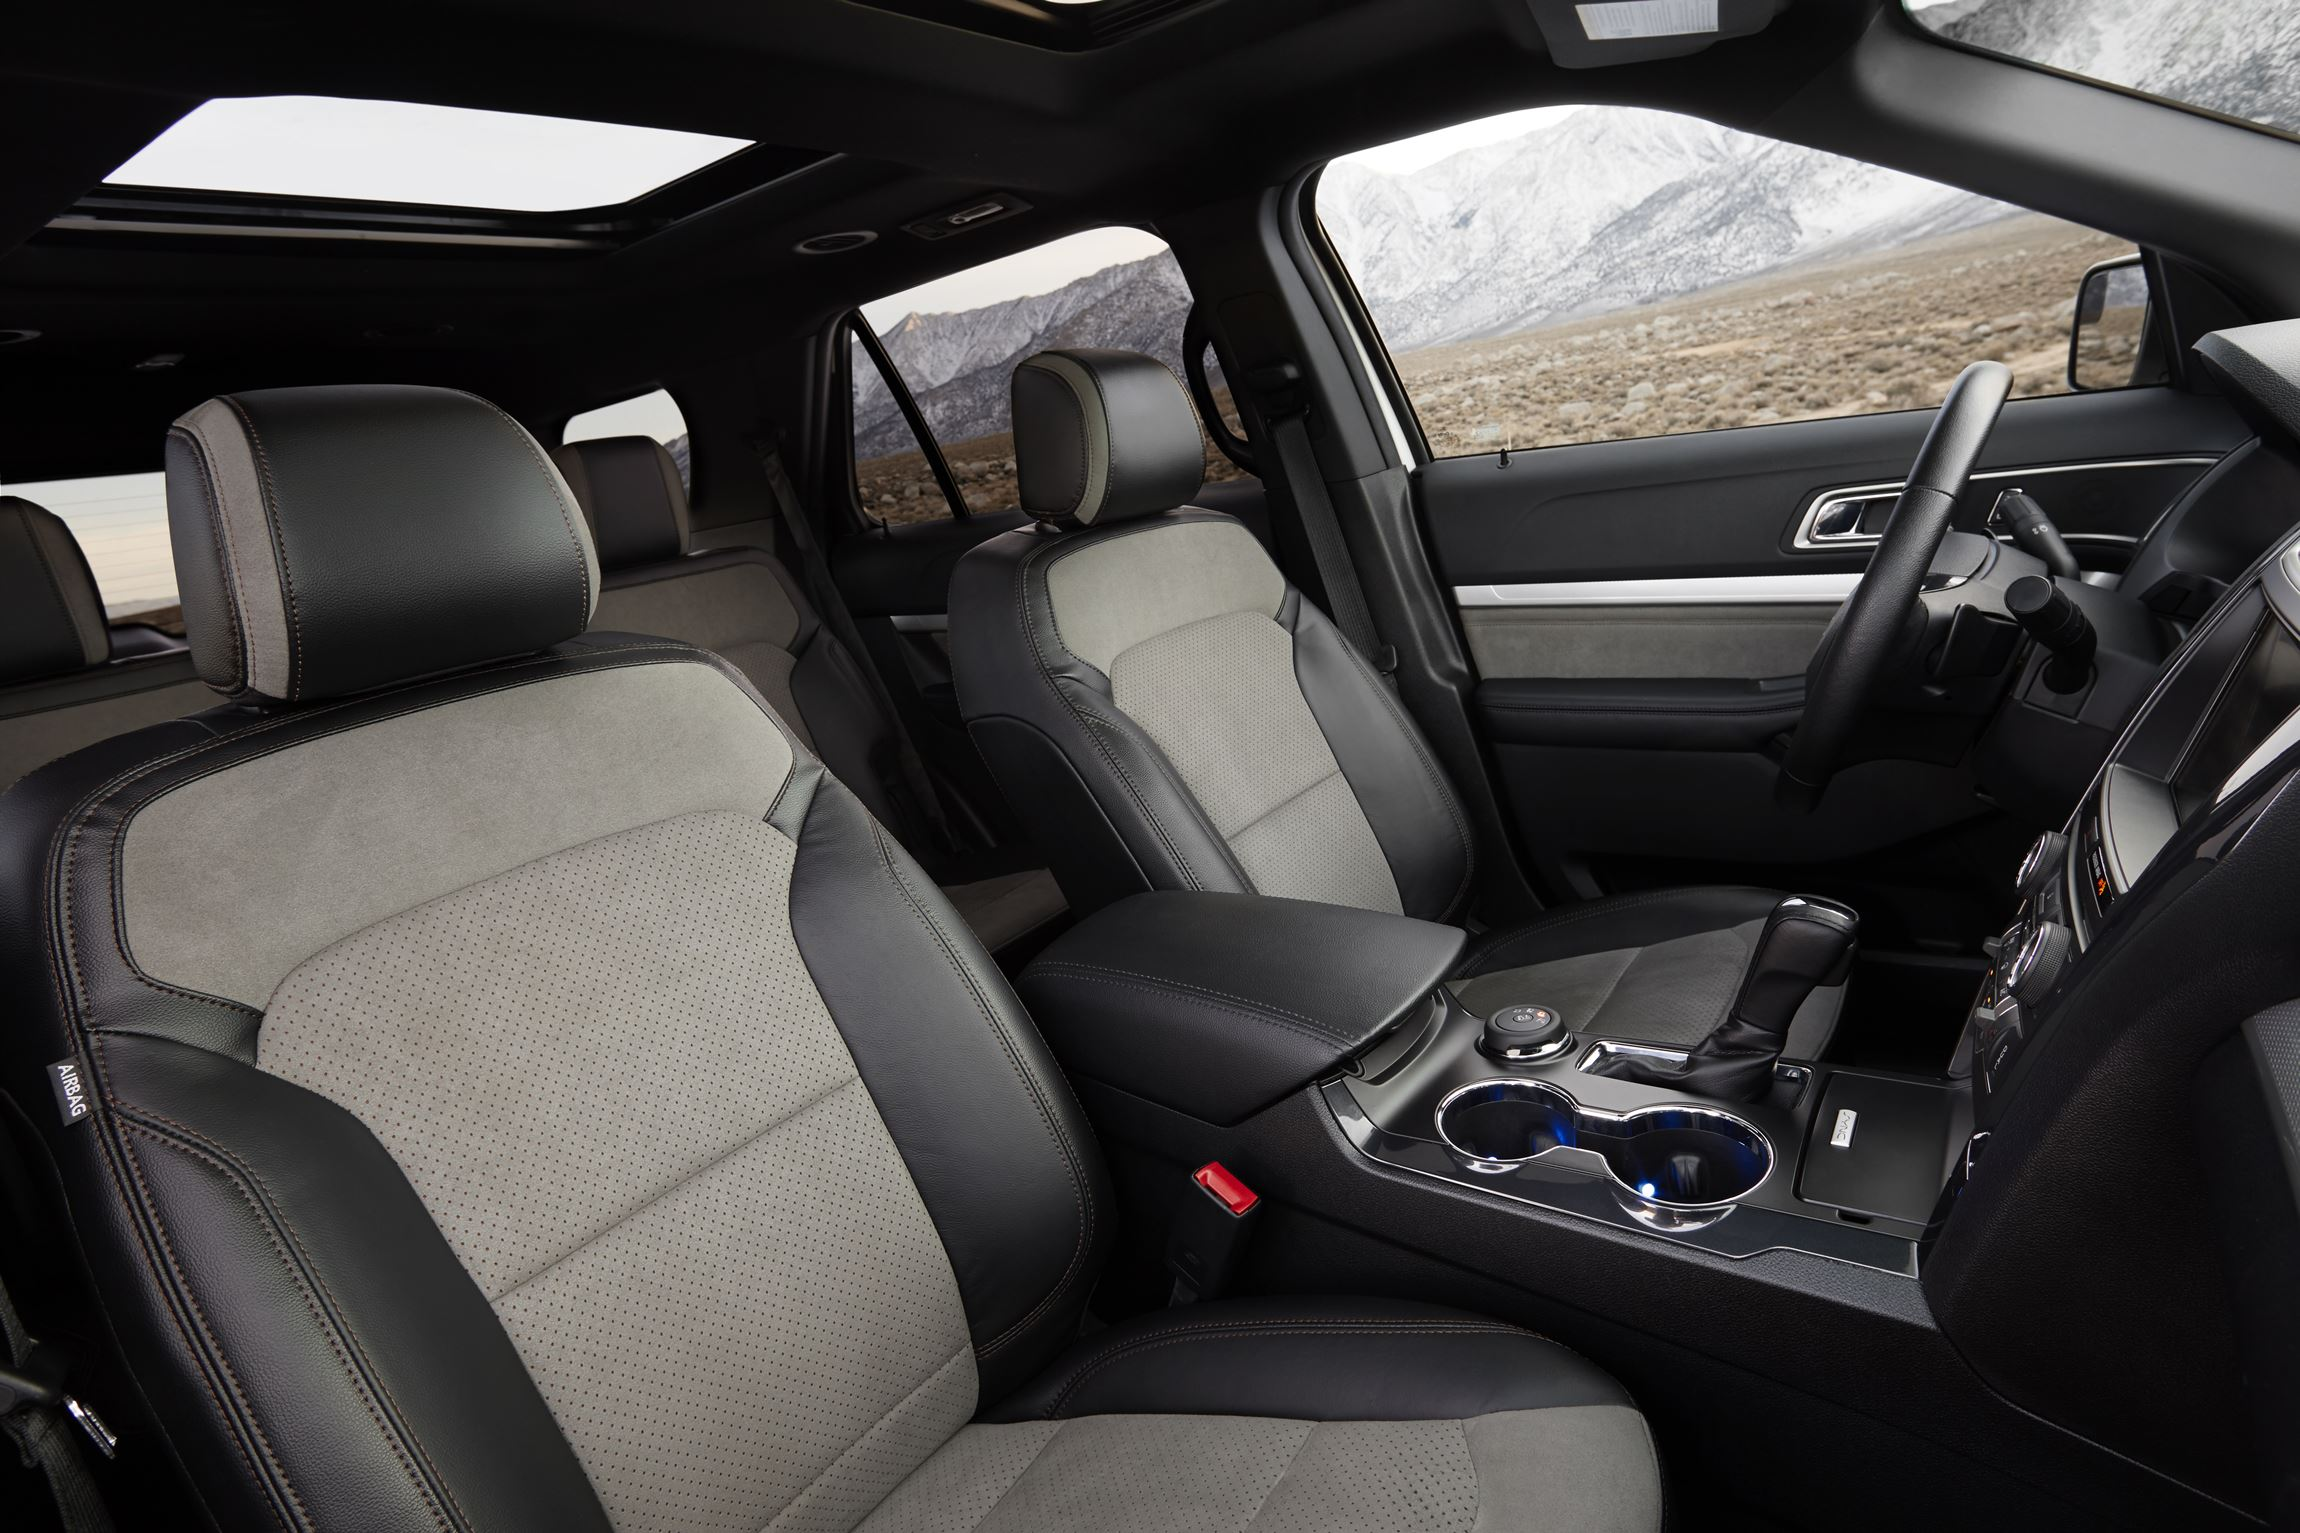 as suv demand grows ford expands popular explorer line with new xlt sport appearance package for 2017 - 2015 Ford Explorer Xlt Interior